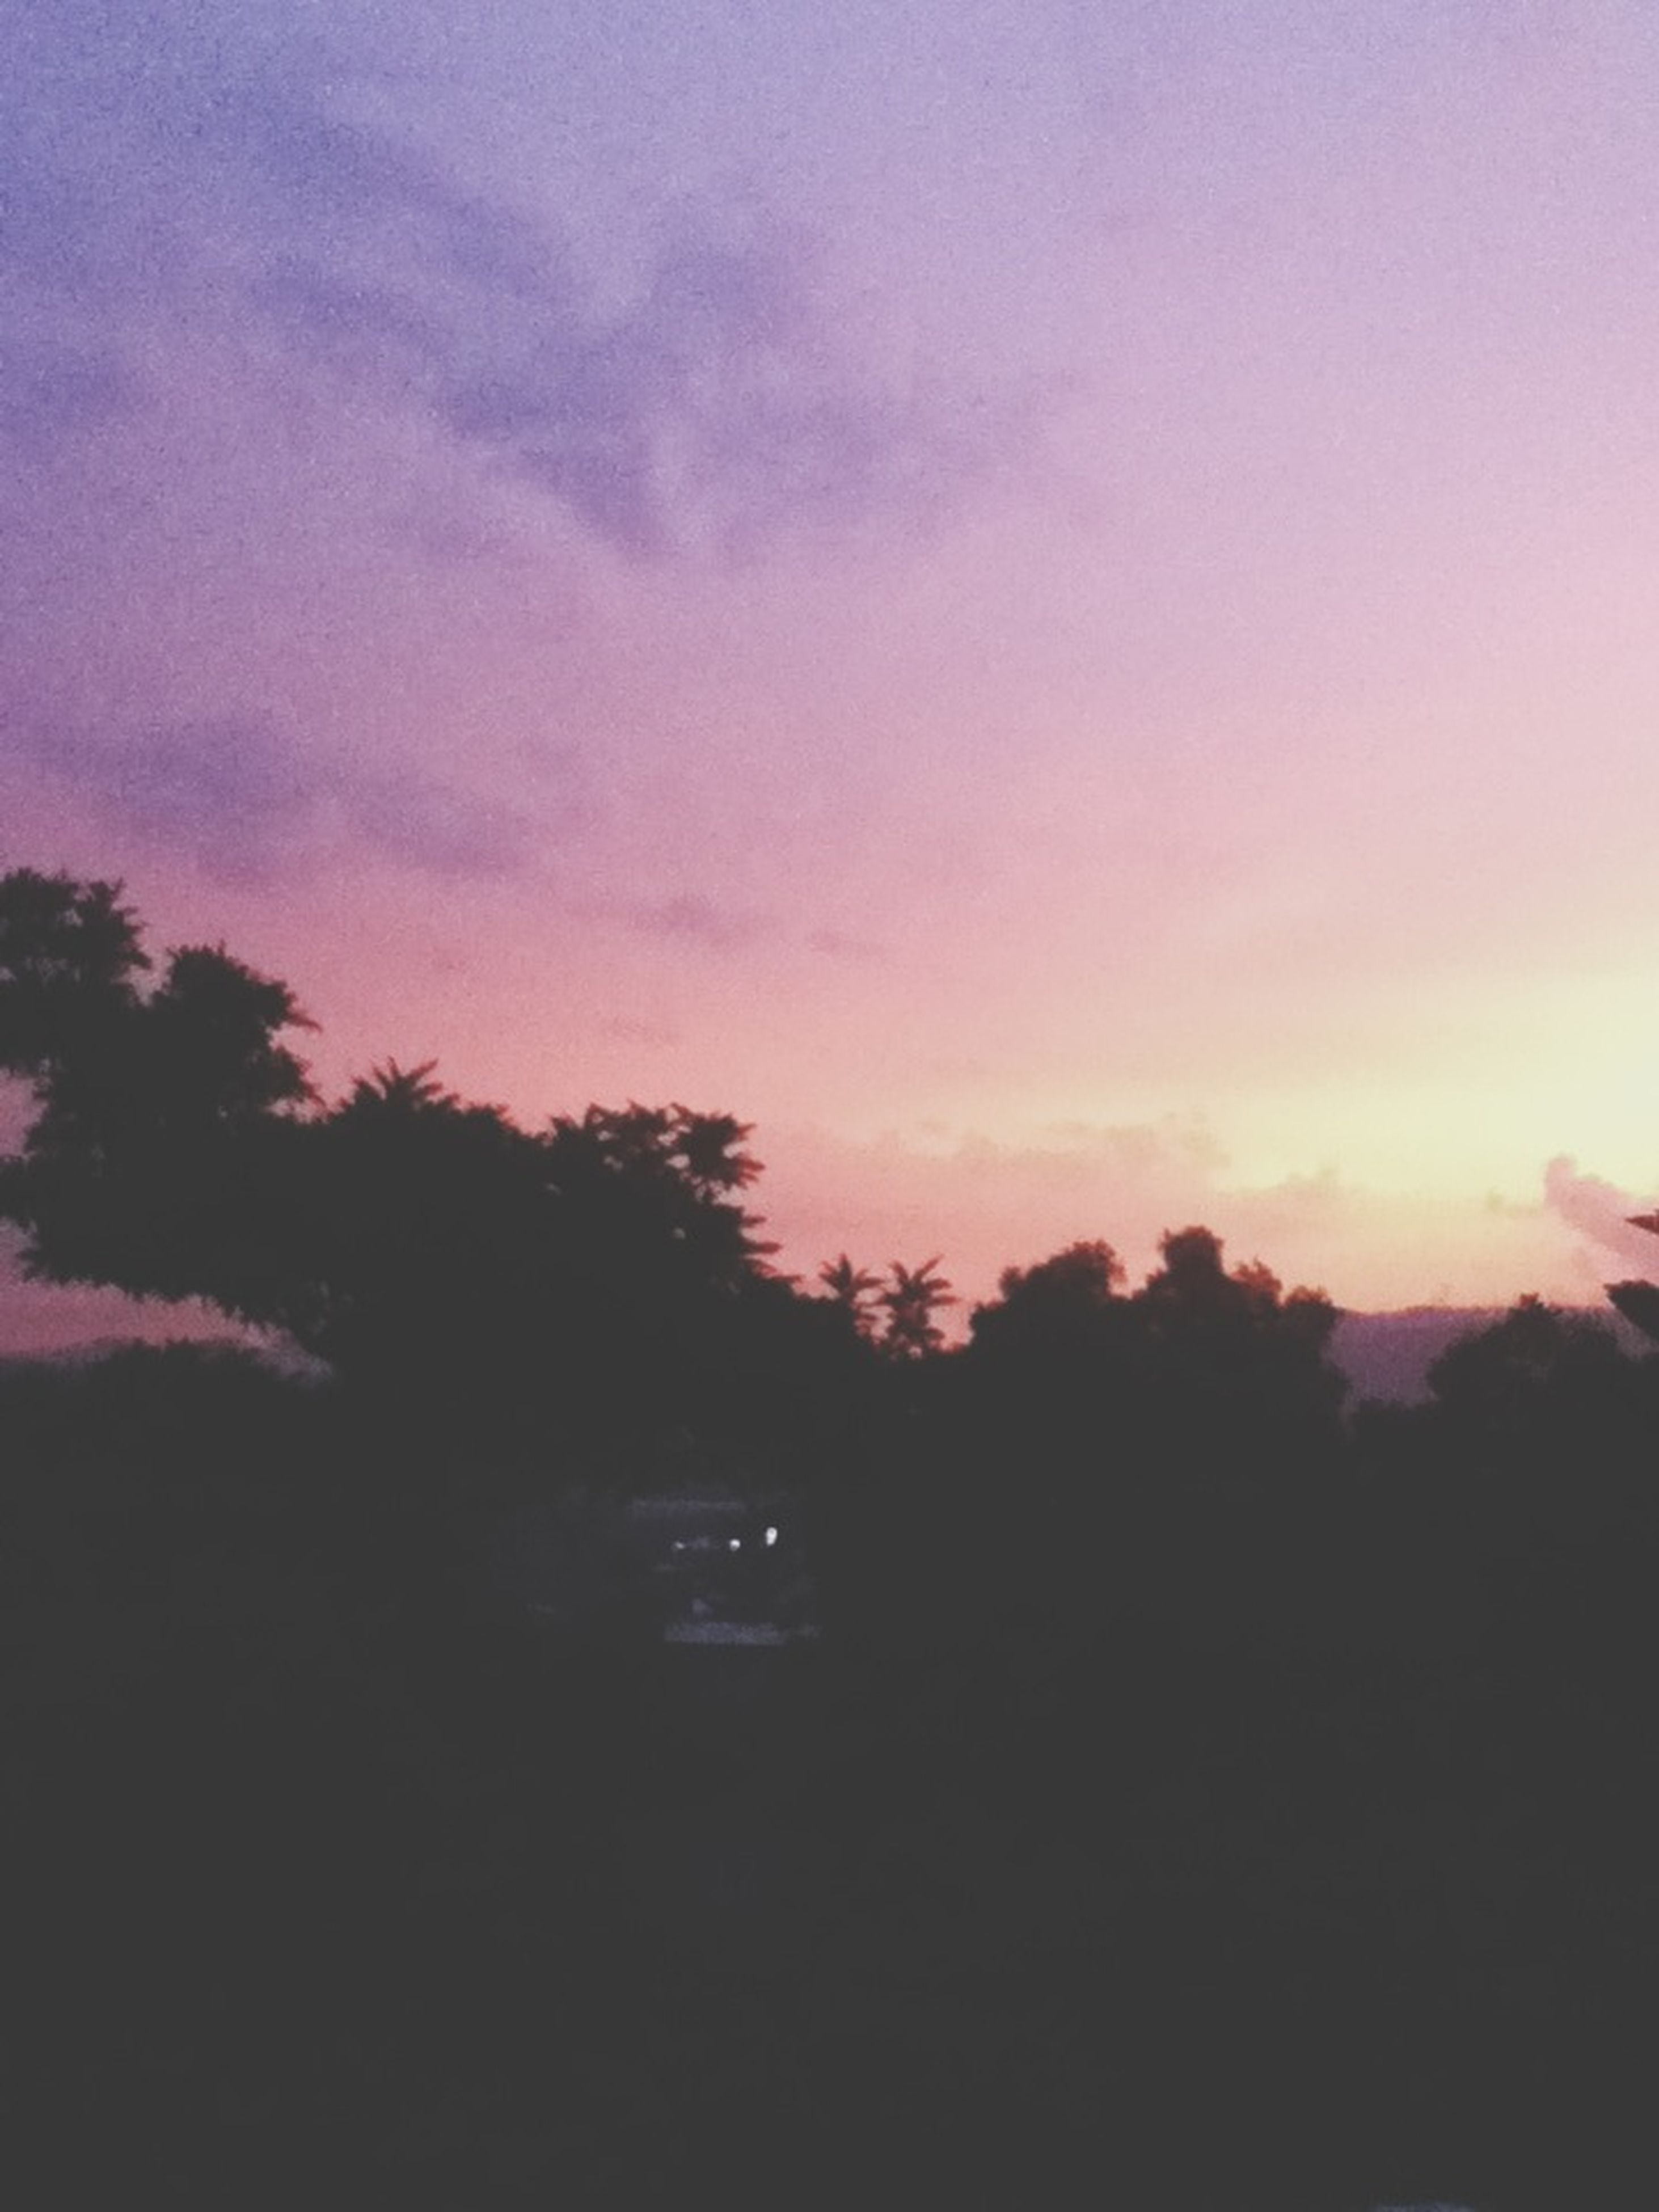 silhouette, sunset, tree, sky, beauty in nature, tranquility, scenics, tranquil scene, nature, orange color, cloud - sky, idyllic, dusk, low angle view, outdoors, dark, growth, no people, landscape, cloud